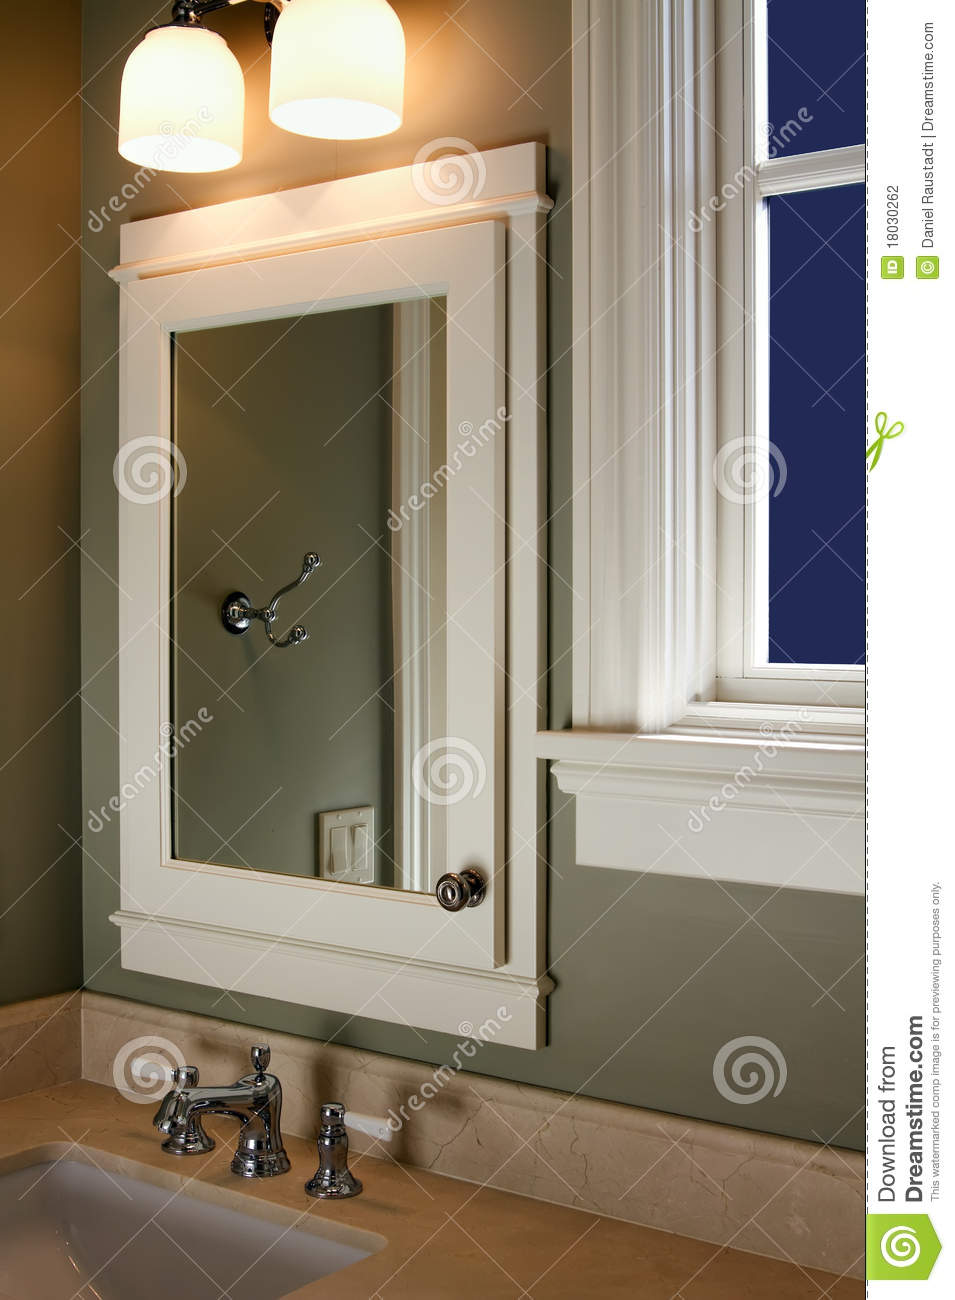 Home Interior Bathroom Mirror And Sink Stock Photo  Image